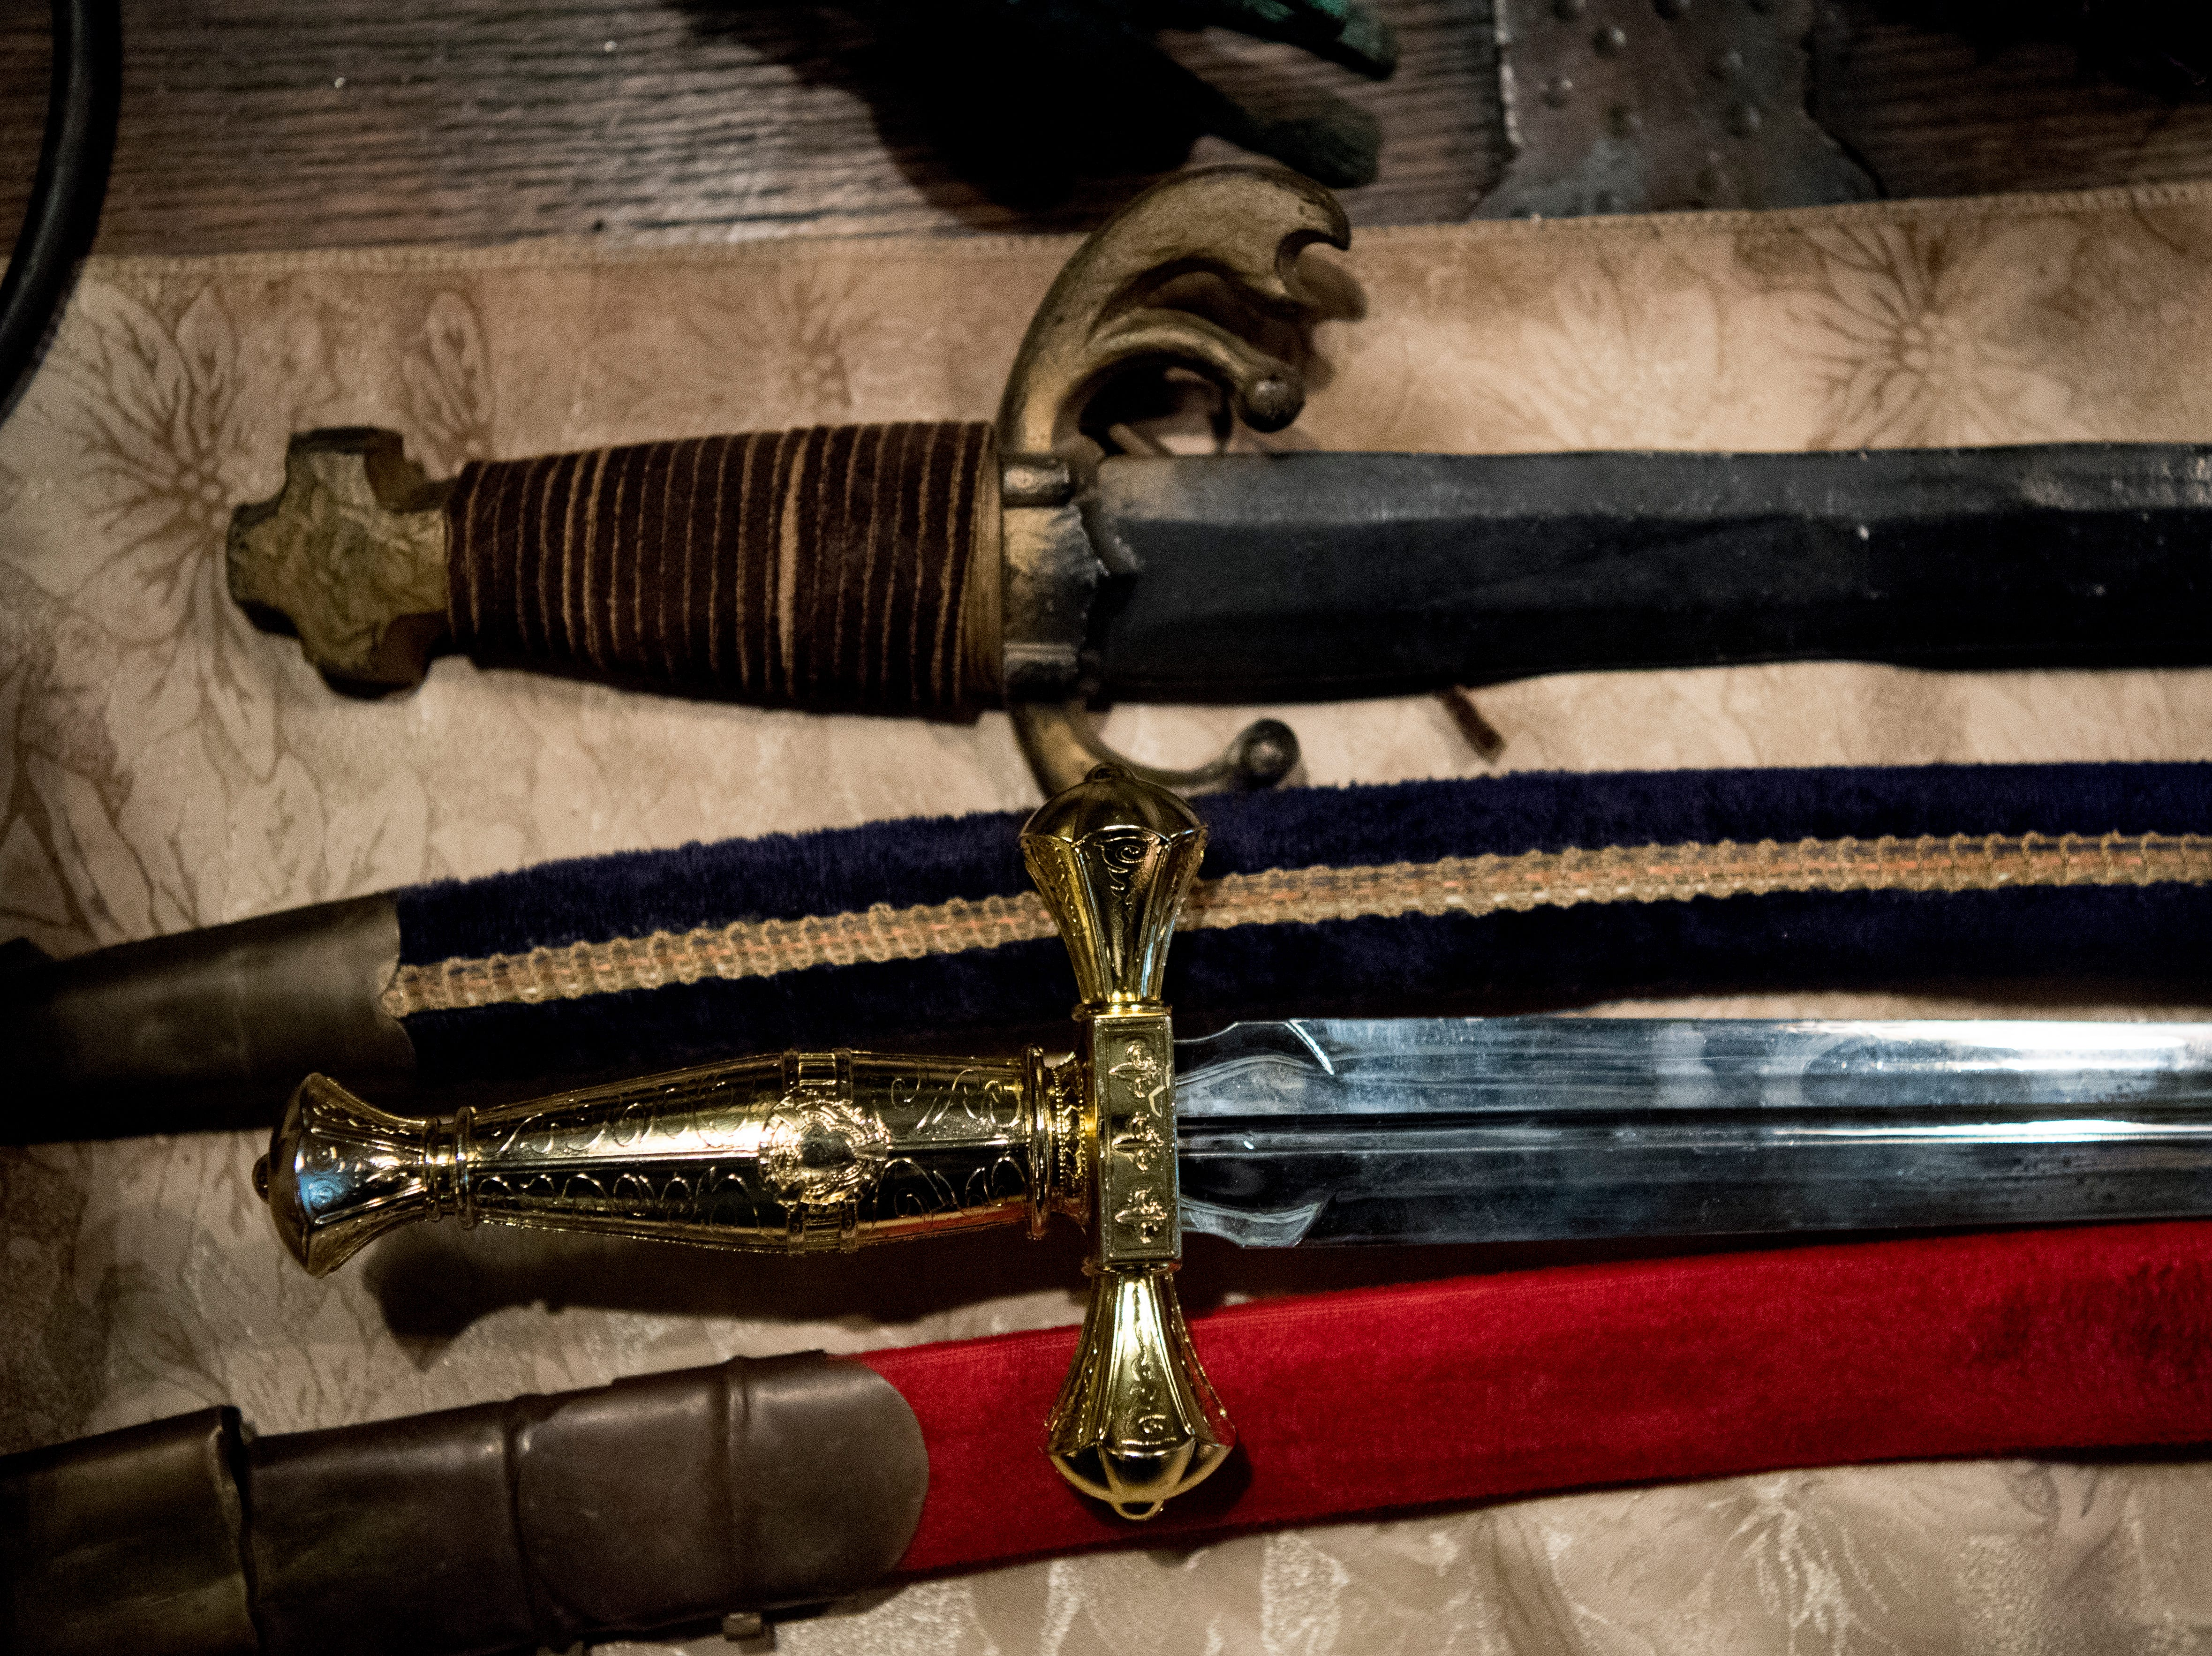 Swords sit on a table inside Williamswood Castle in South Knoxville, Tennessee on Thursday, January 17, 2019. The home, modeled after a medieval castle, was built by Julia Tucker in 1991 and took 6 years to complete. Many of the items in the home were sourced from around the Knoxville area.